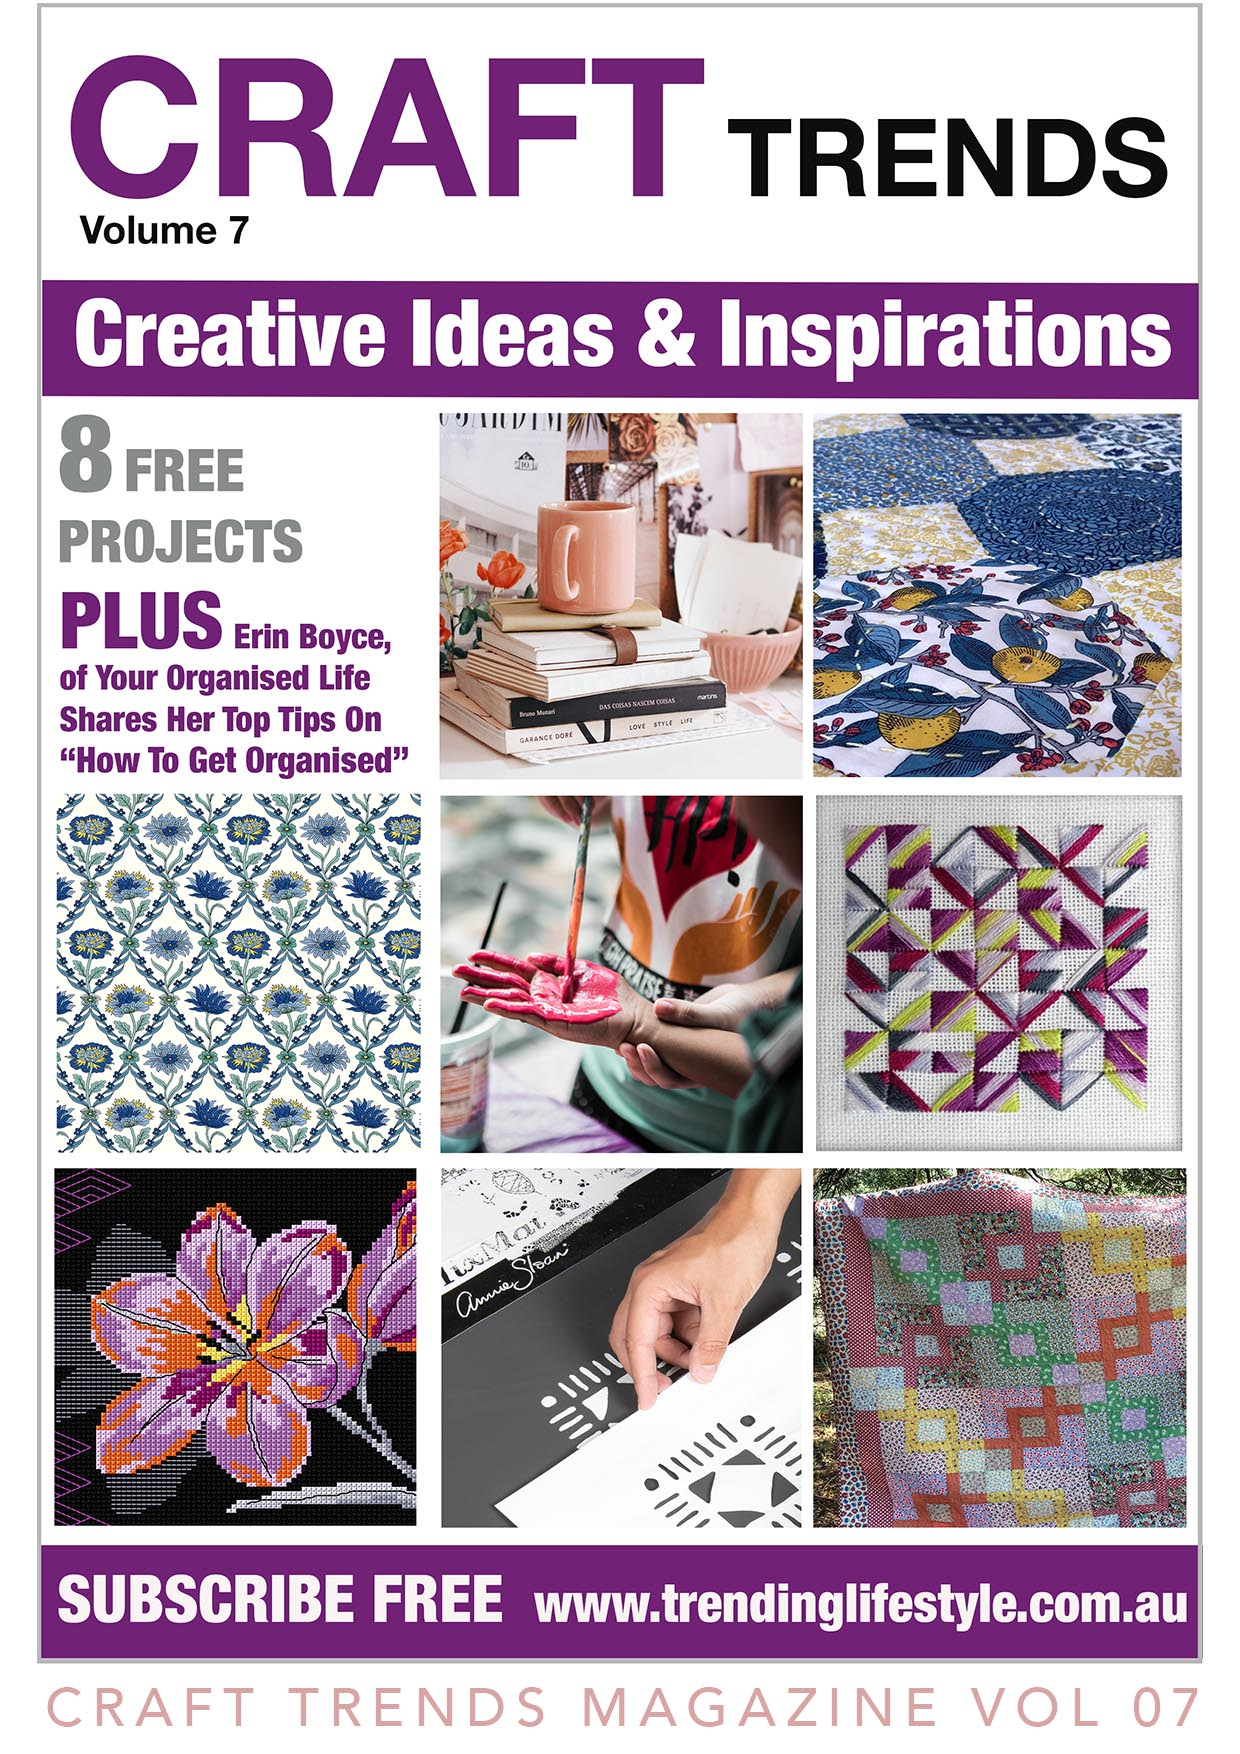 Craft Trends Magazine Volume 7